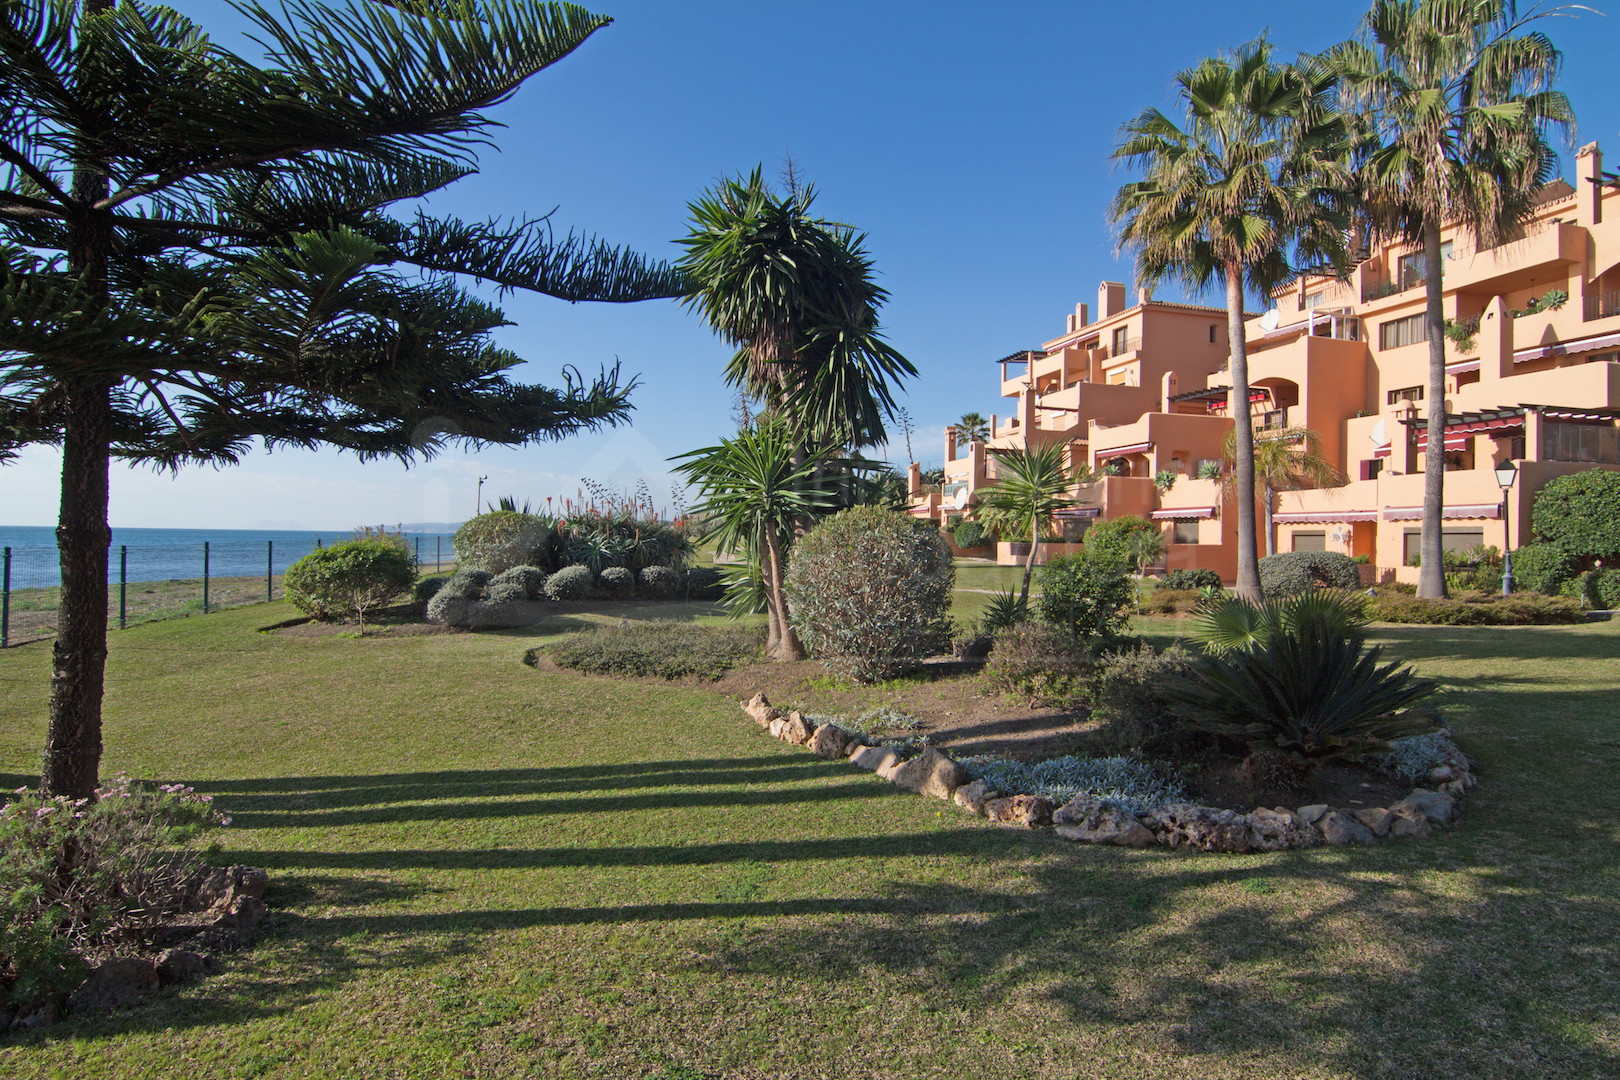 3 bedroom apartment for sale by the beach in Rivera Andaluza, Estepona